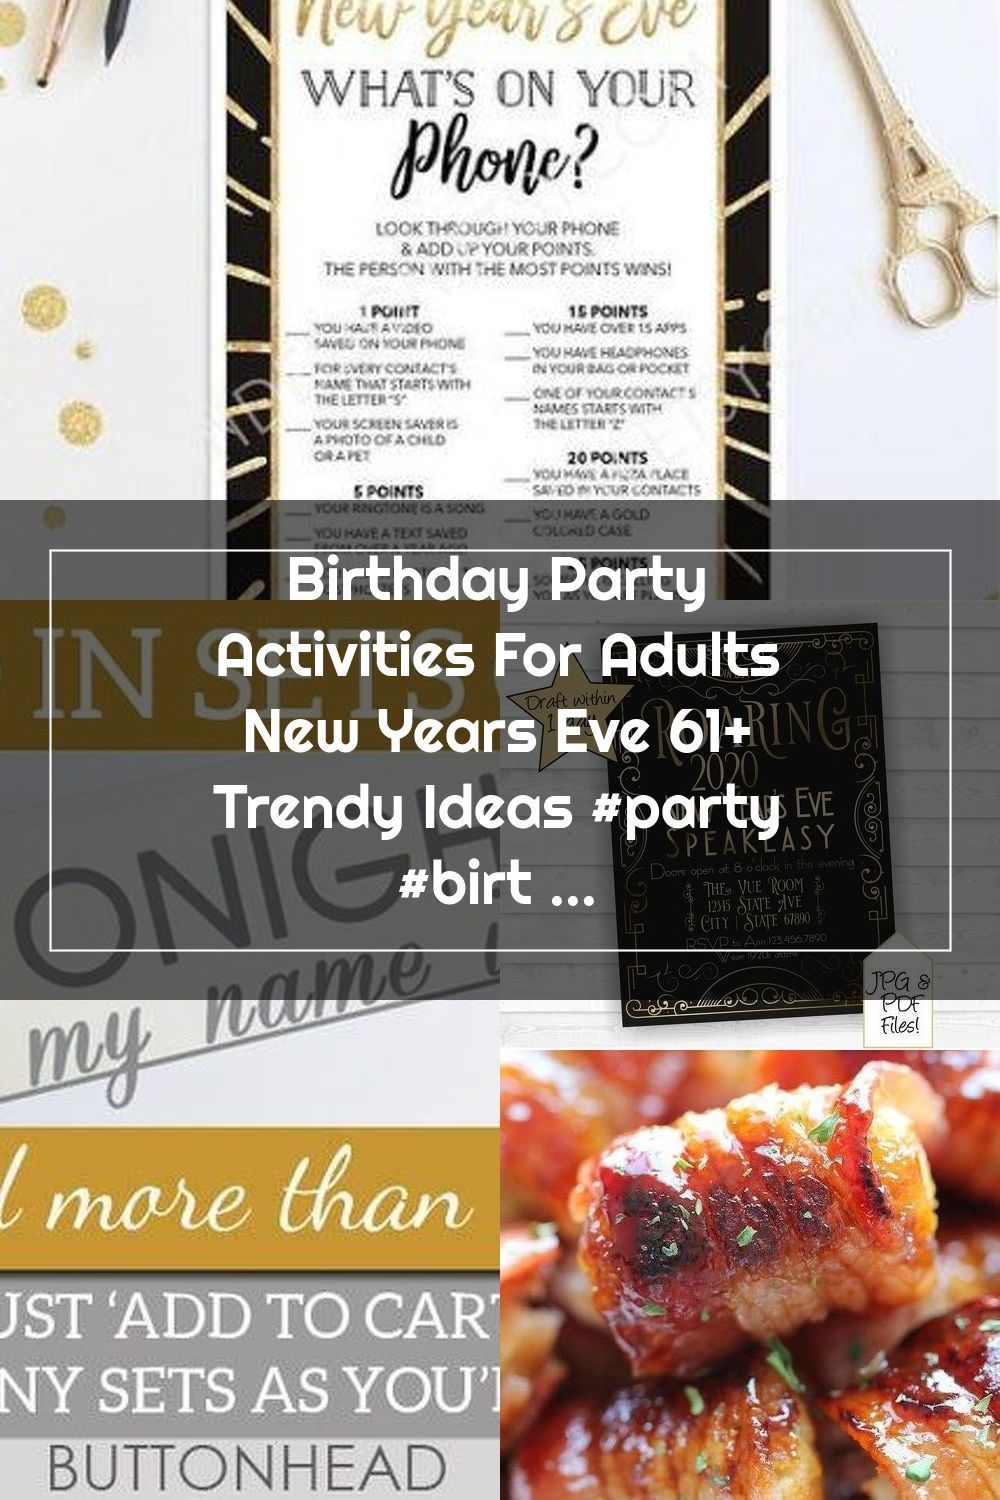 Birthday Party Activities For Adults New Years Eve 61 ...